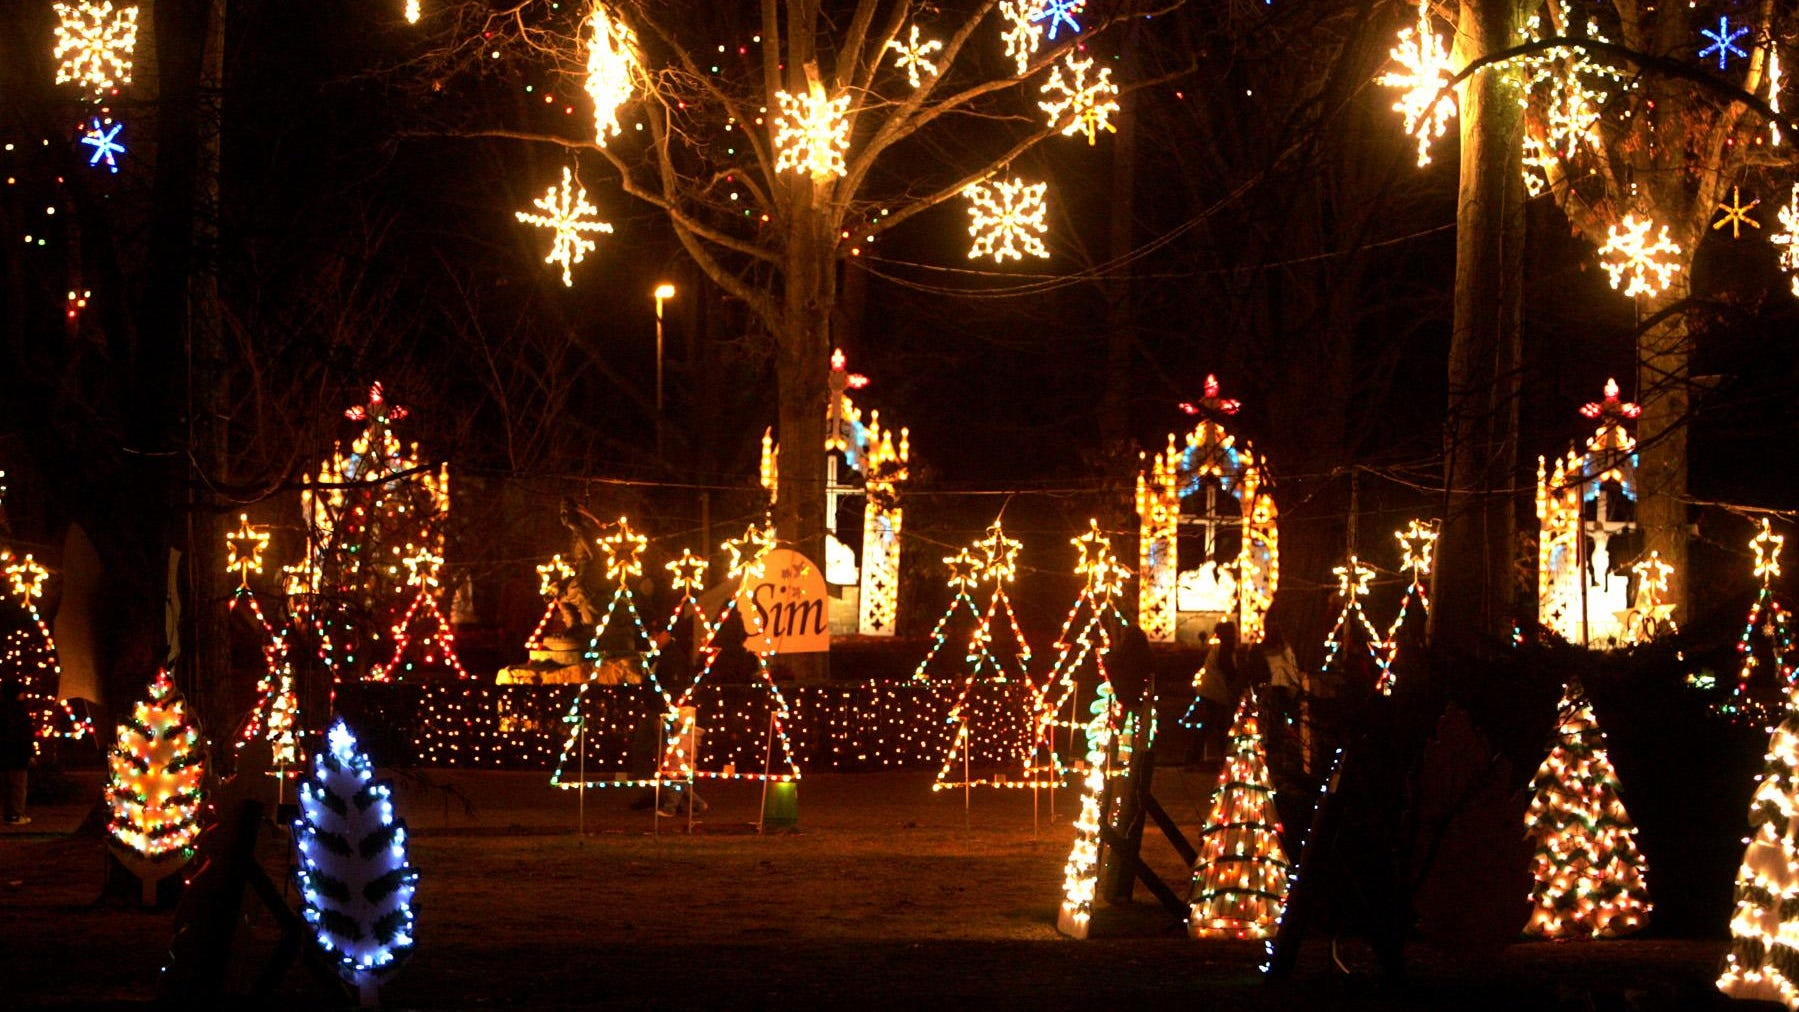 Christmas Events December 2021 And Holbrook Ma Covid Holiday Lights Shows In Massachusetts In 2020 Amid Coronavirus